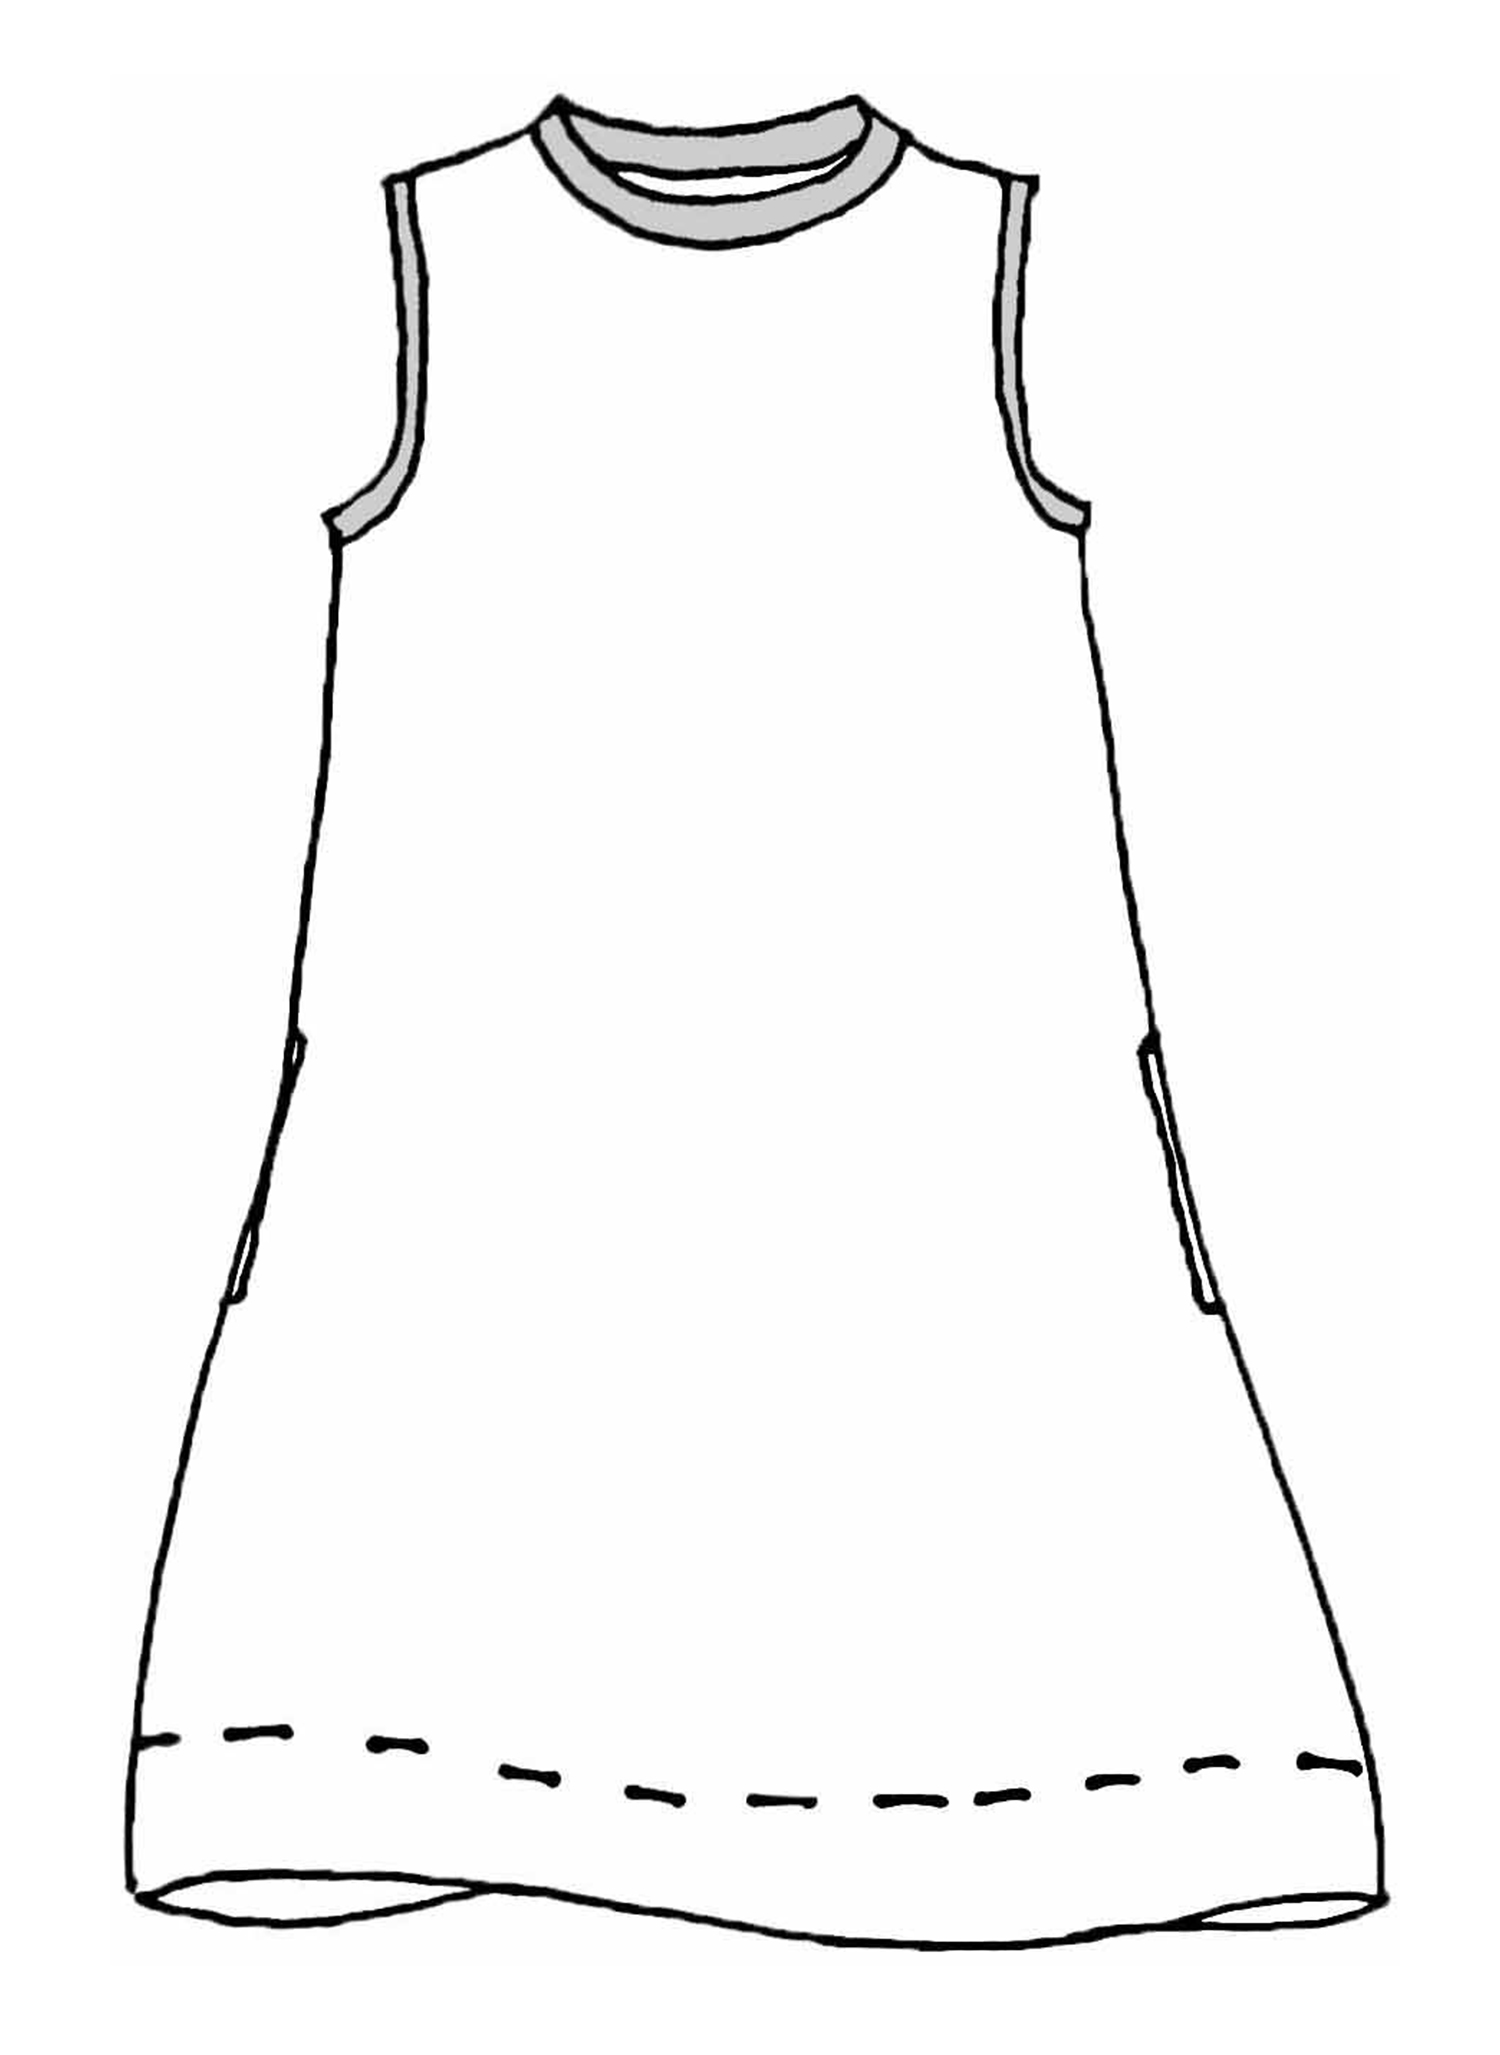 Over & Under Tunic sketch image